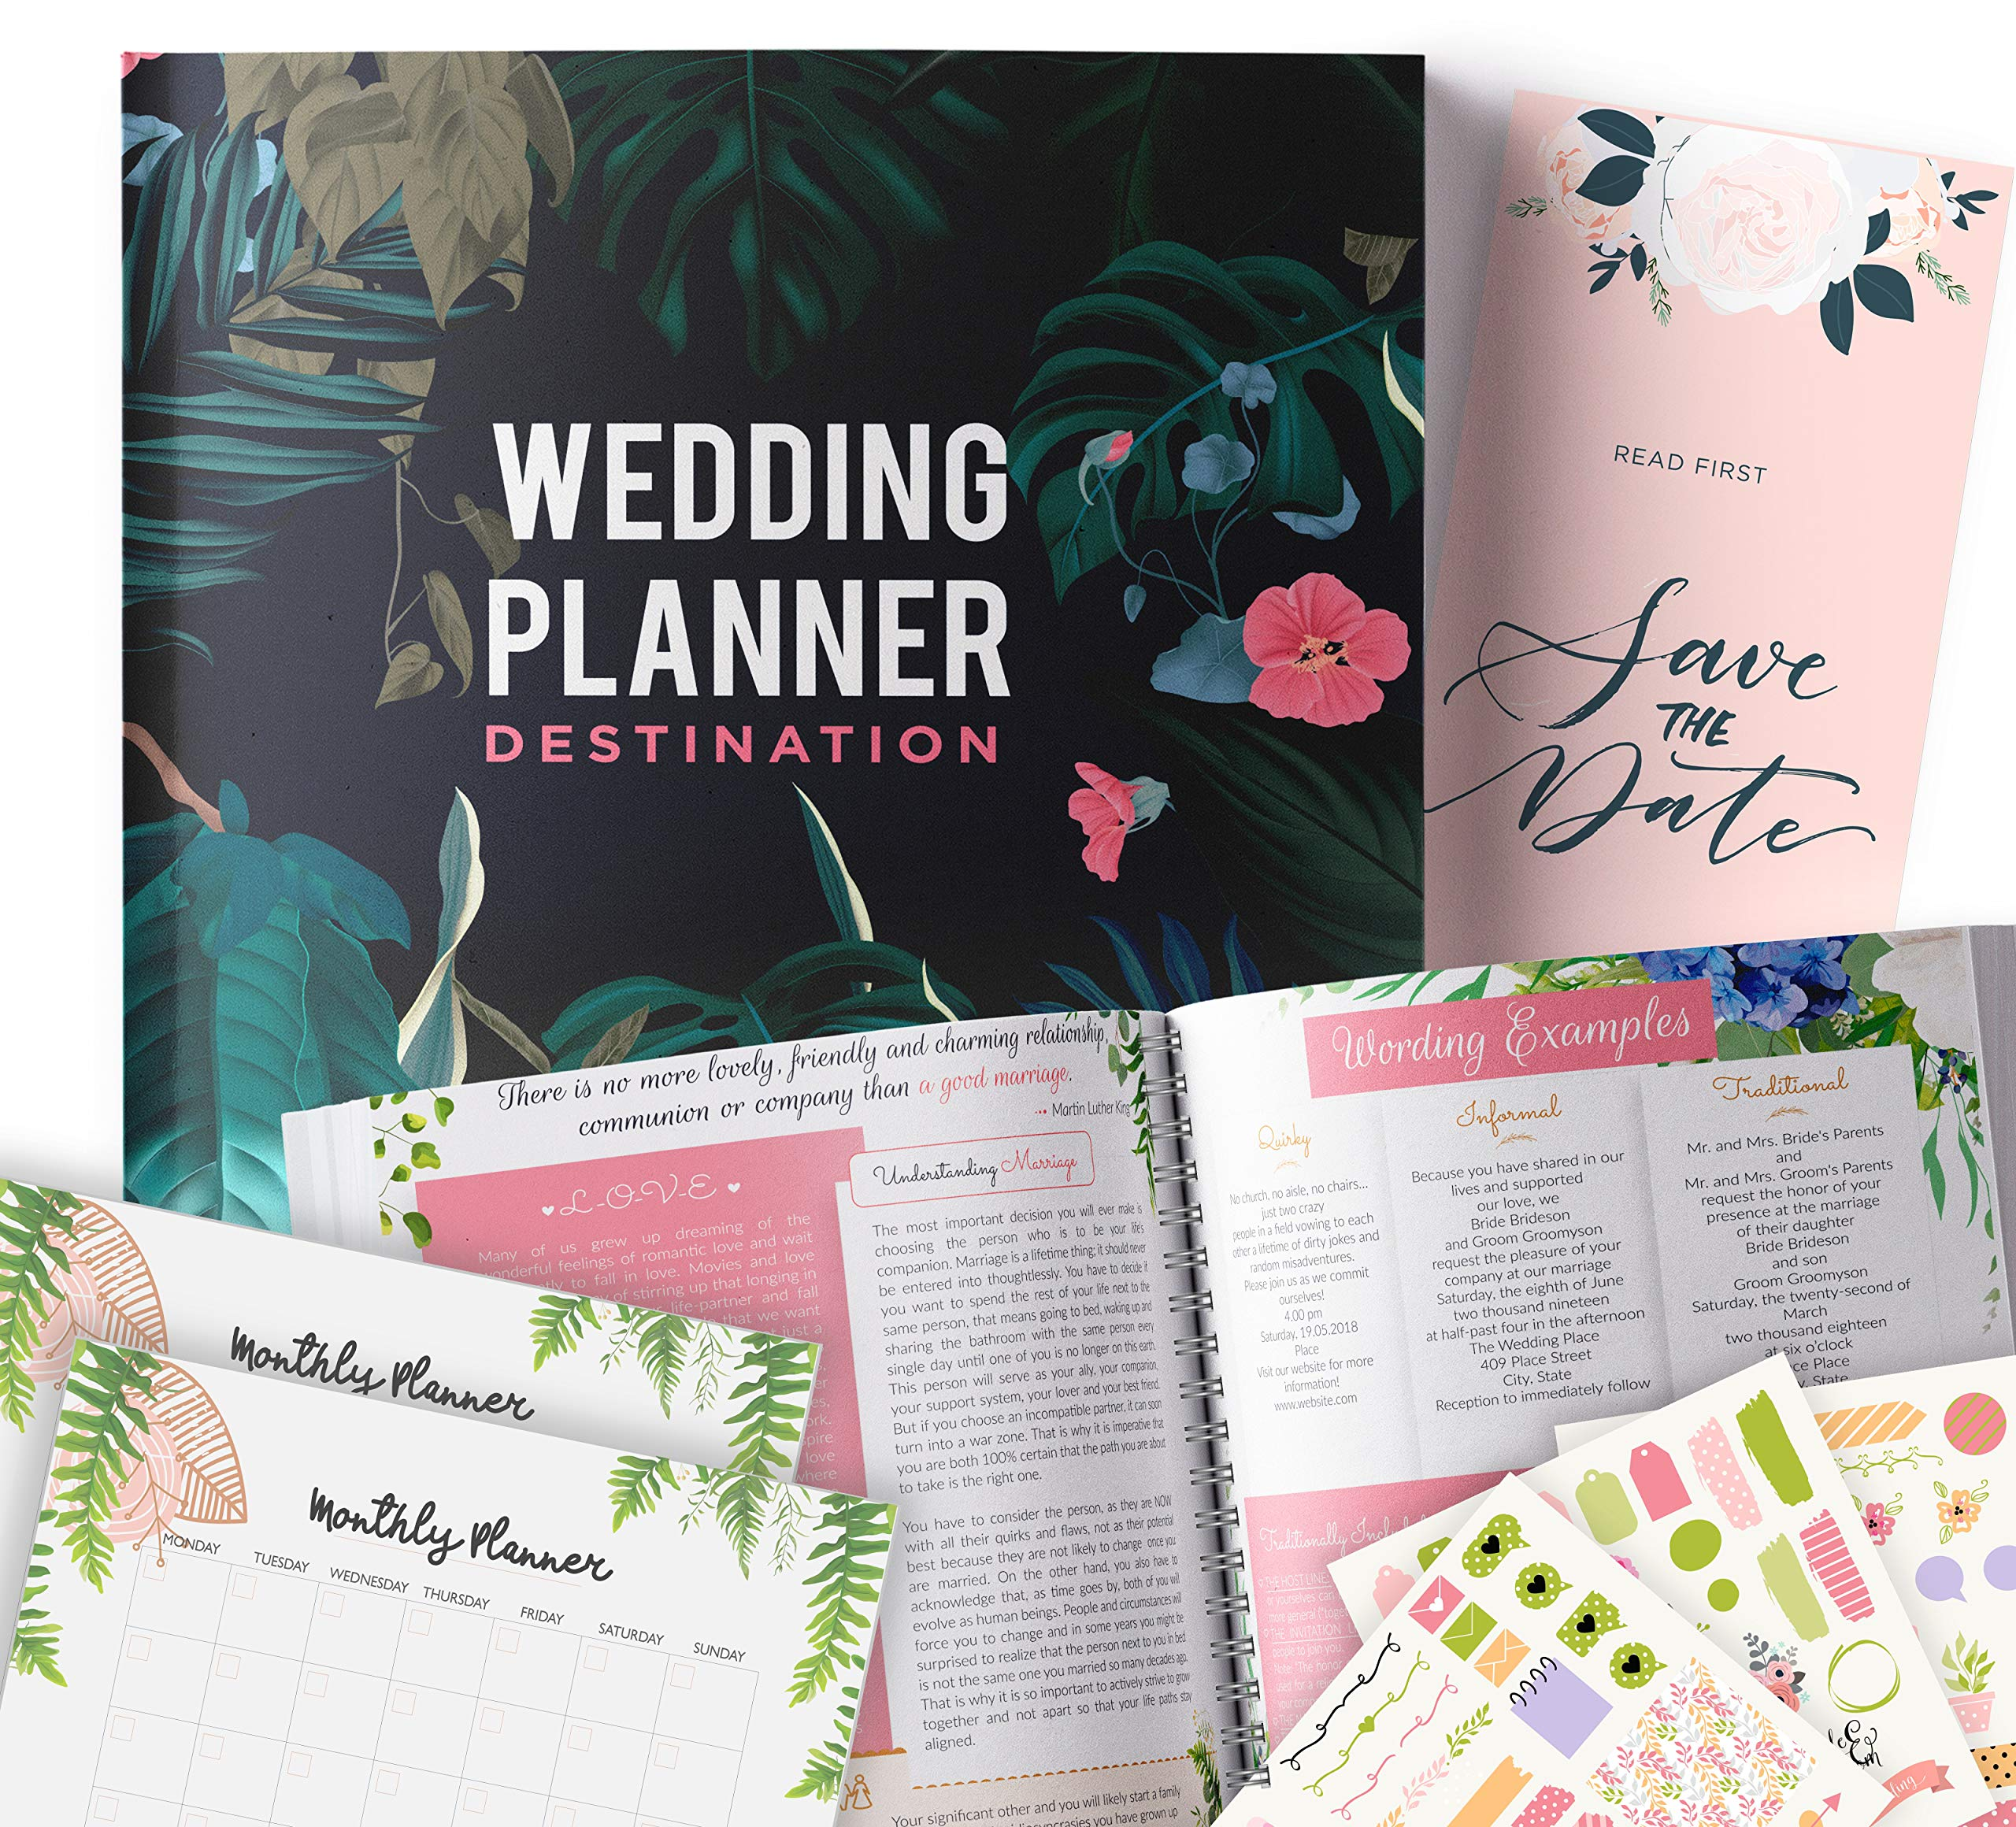 Destination Wedding Planner | Step-By-Step Binder to Organize Your Dream Day Using Stickers, Photos & Pictures | Journal For Organizing a Wedding by Yourself | Gift for Brides | by Floating Daydreams